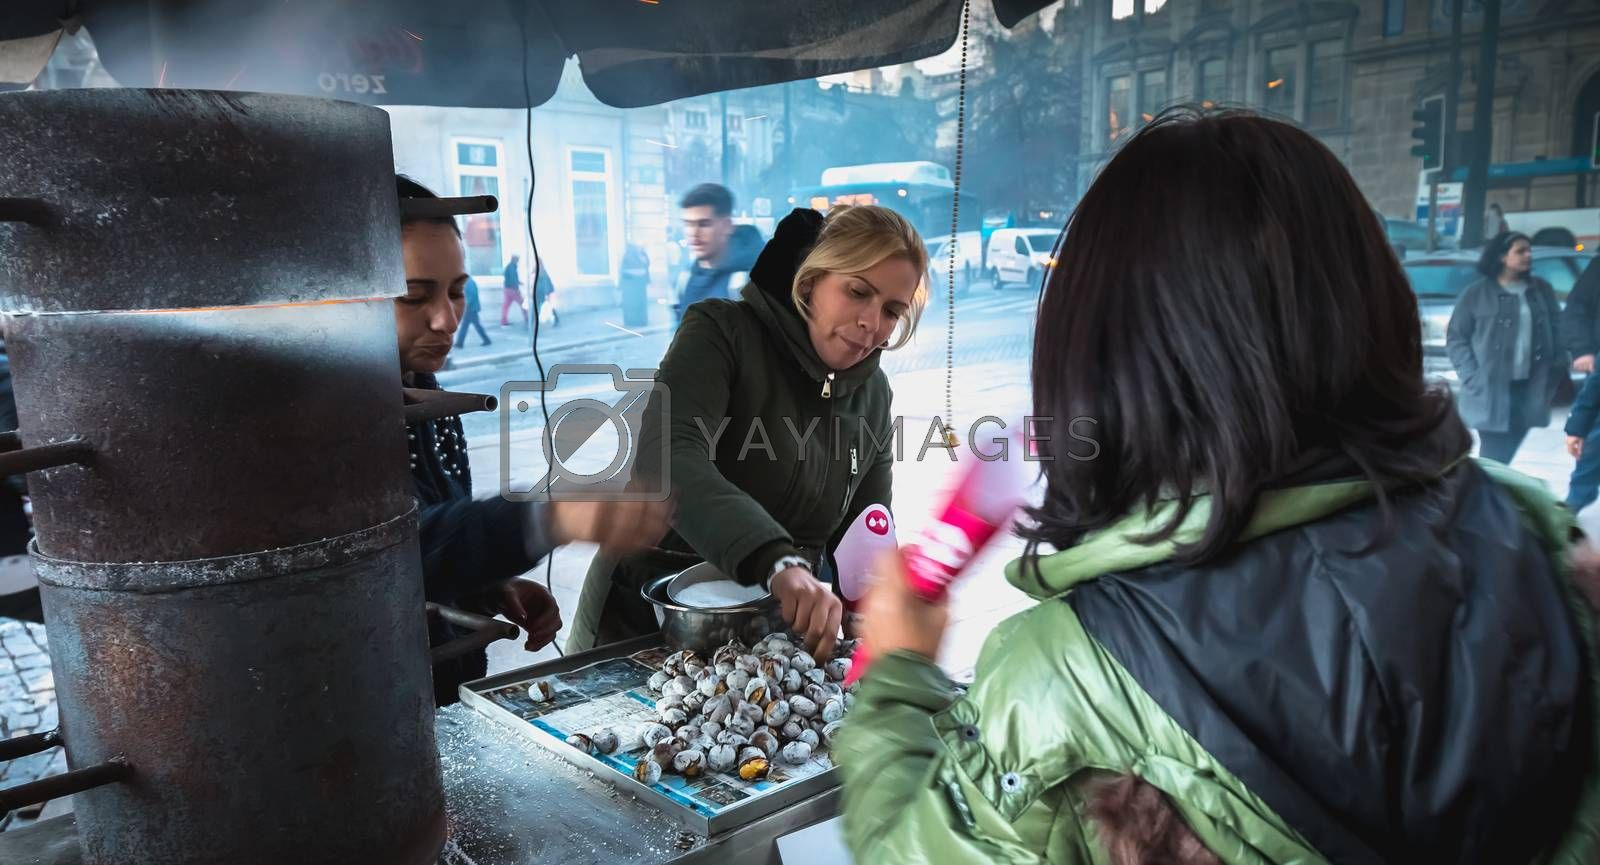 Street vendors of braised chestnuts in front of Sao Bento statio by AtlanticEUROSTOXX